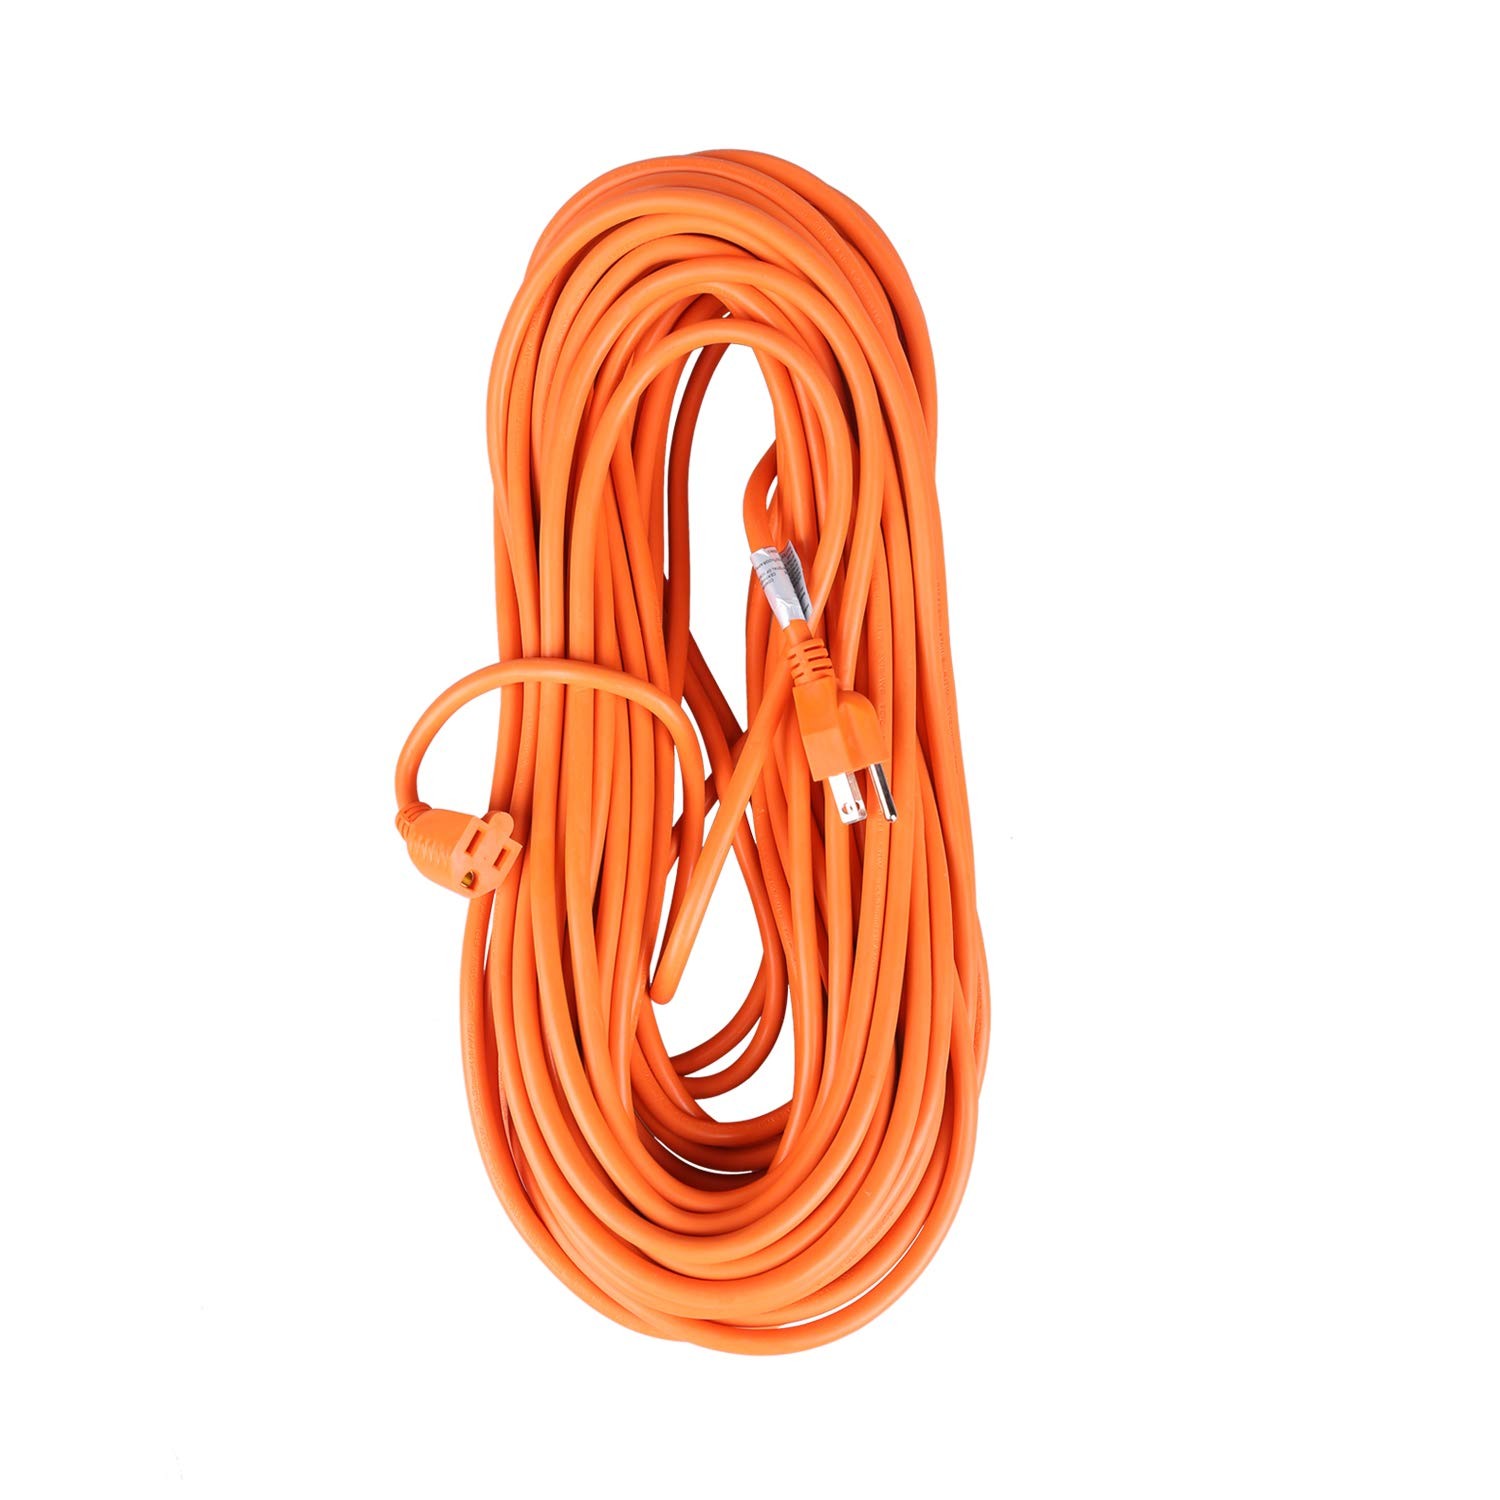 EPICORD 16/3 Outdoor Extension Cord 3 Conductor Heavy Duty with Locking System (25FT)